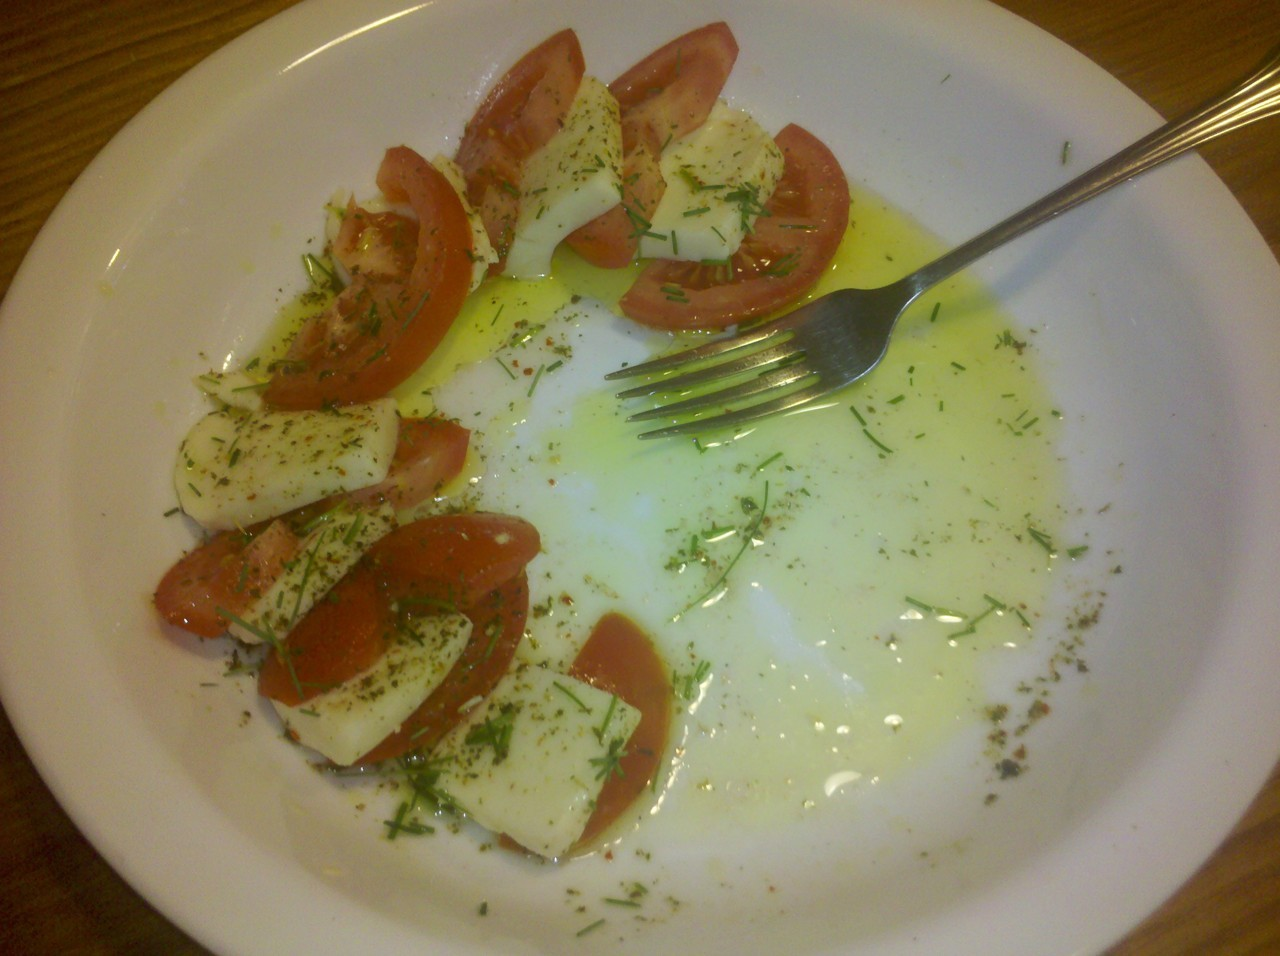 Just have to say that my favorite appetizer this summer has been fresh tomatoes, the real kind of mozzarella, dipping spices, olive oil, and of course little chive/green onions as a garnish…we had already gone through half a plate =D